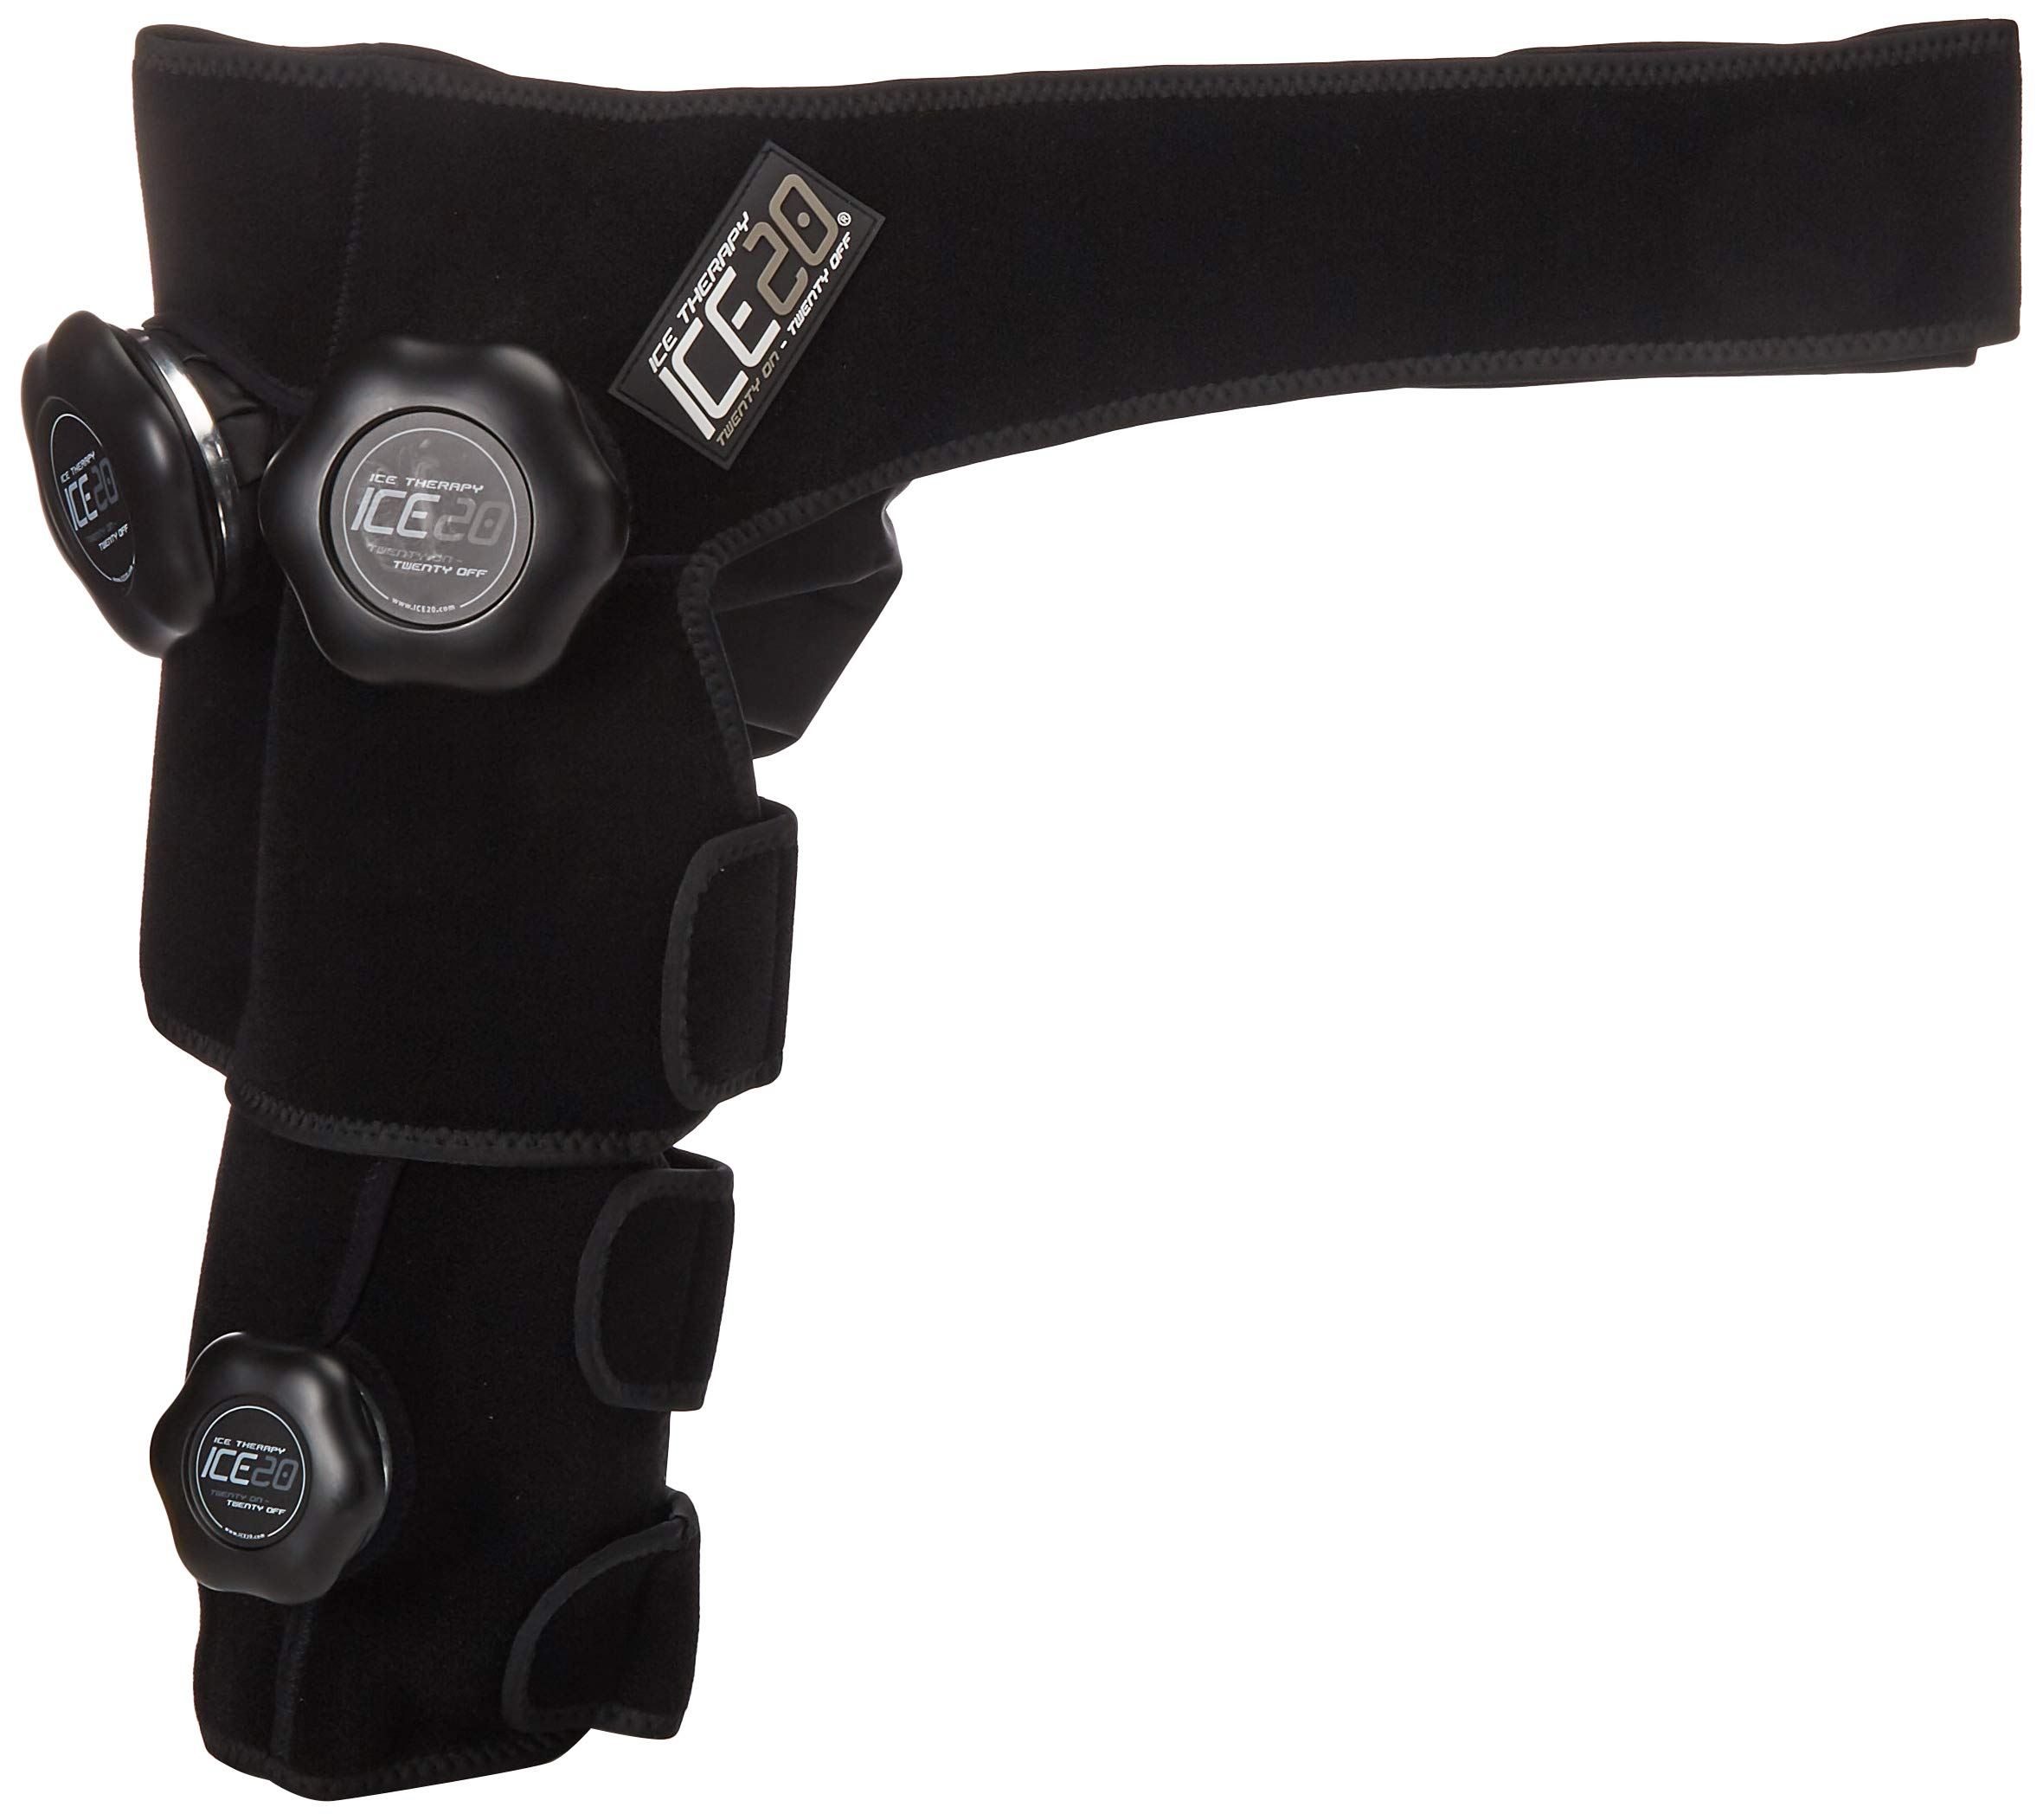 Ice20 Bownet Combo Arm Ice Compression Wrap (Ice-Combo Arm) by ICE20